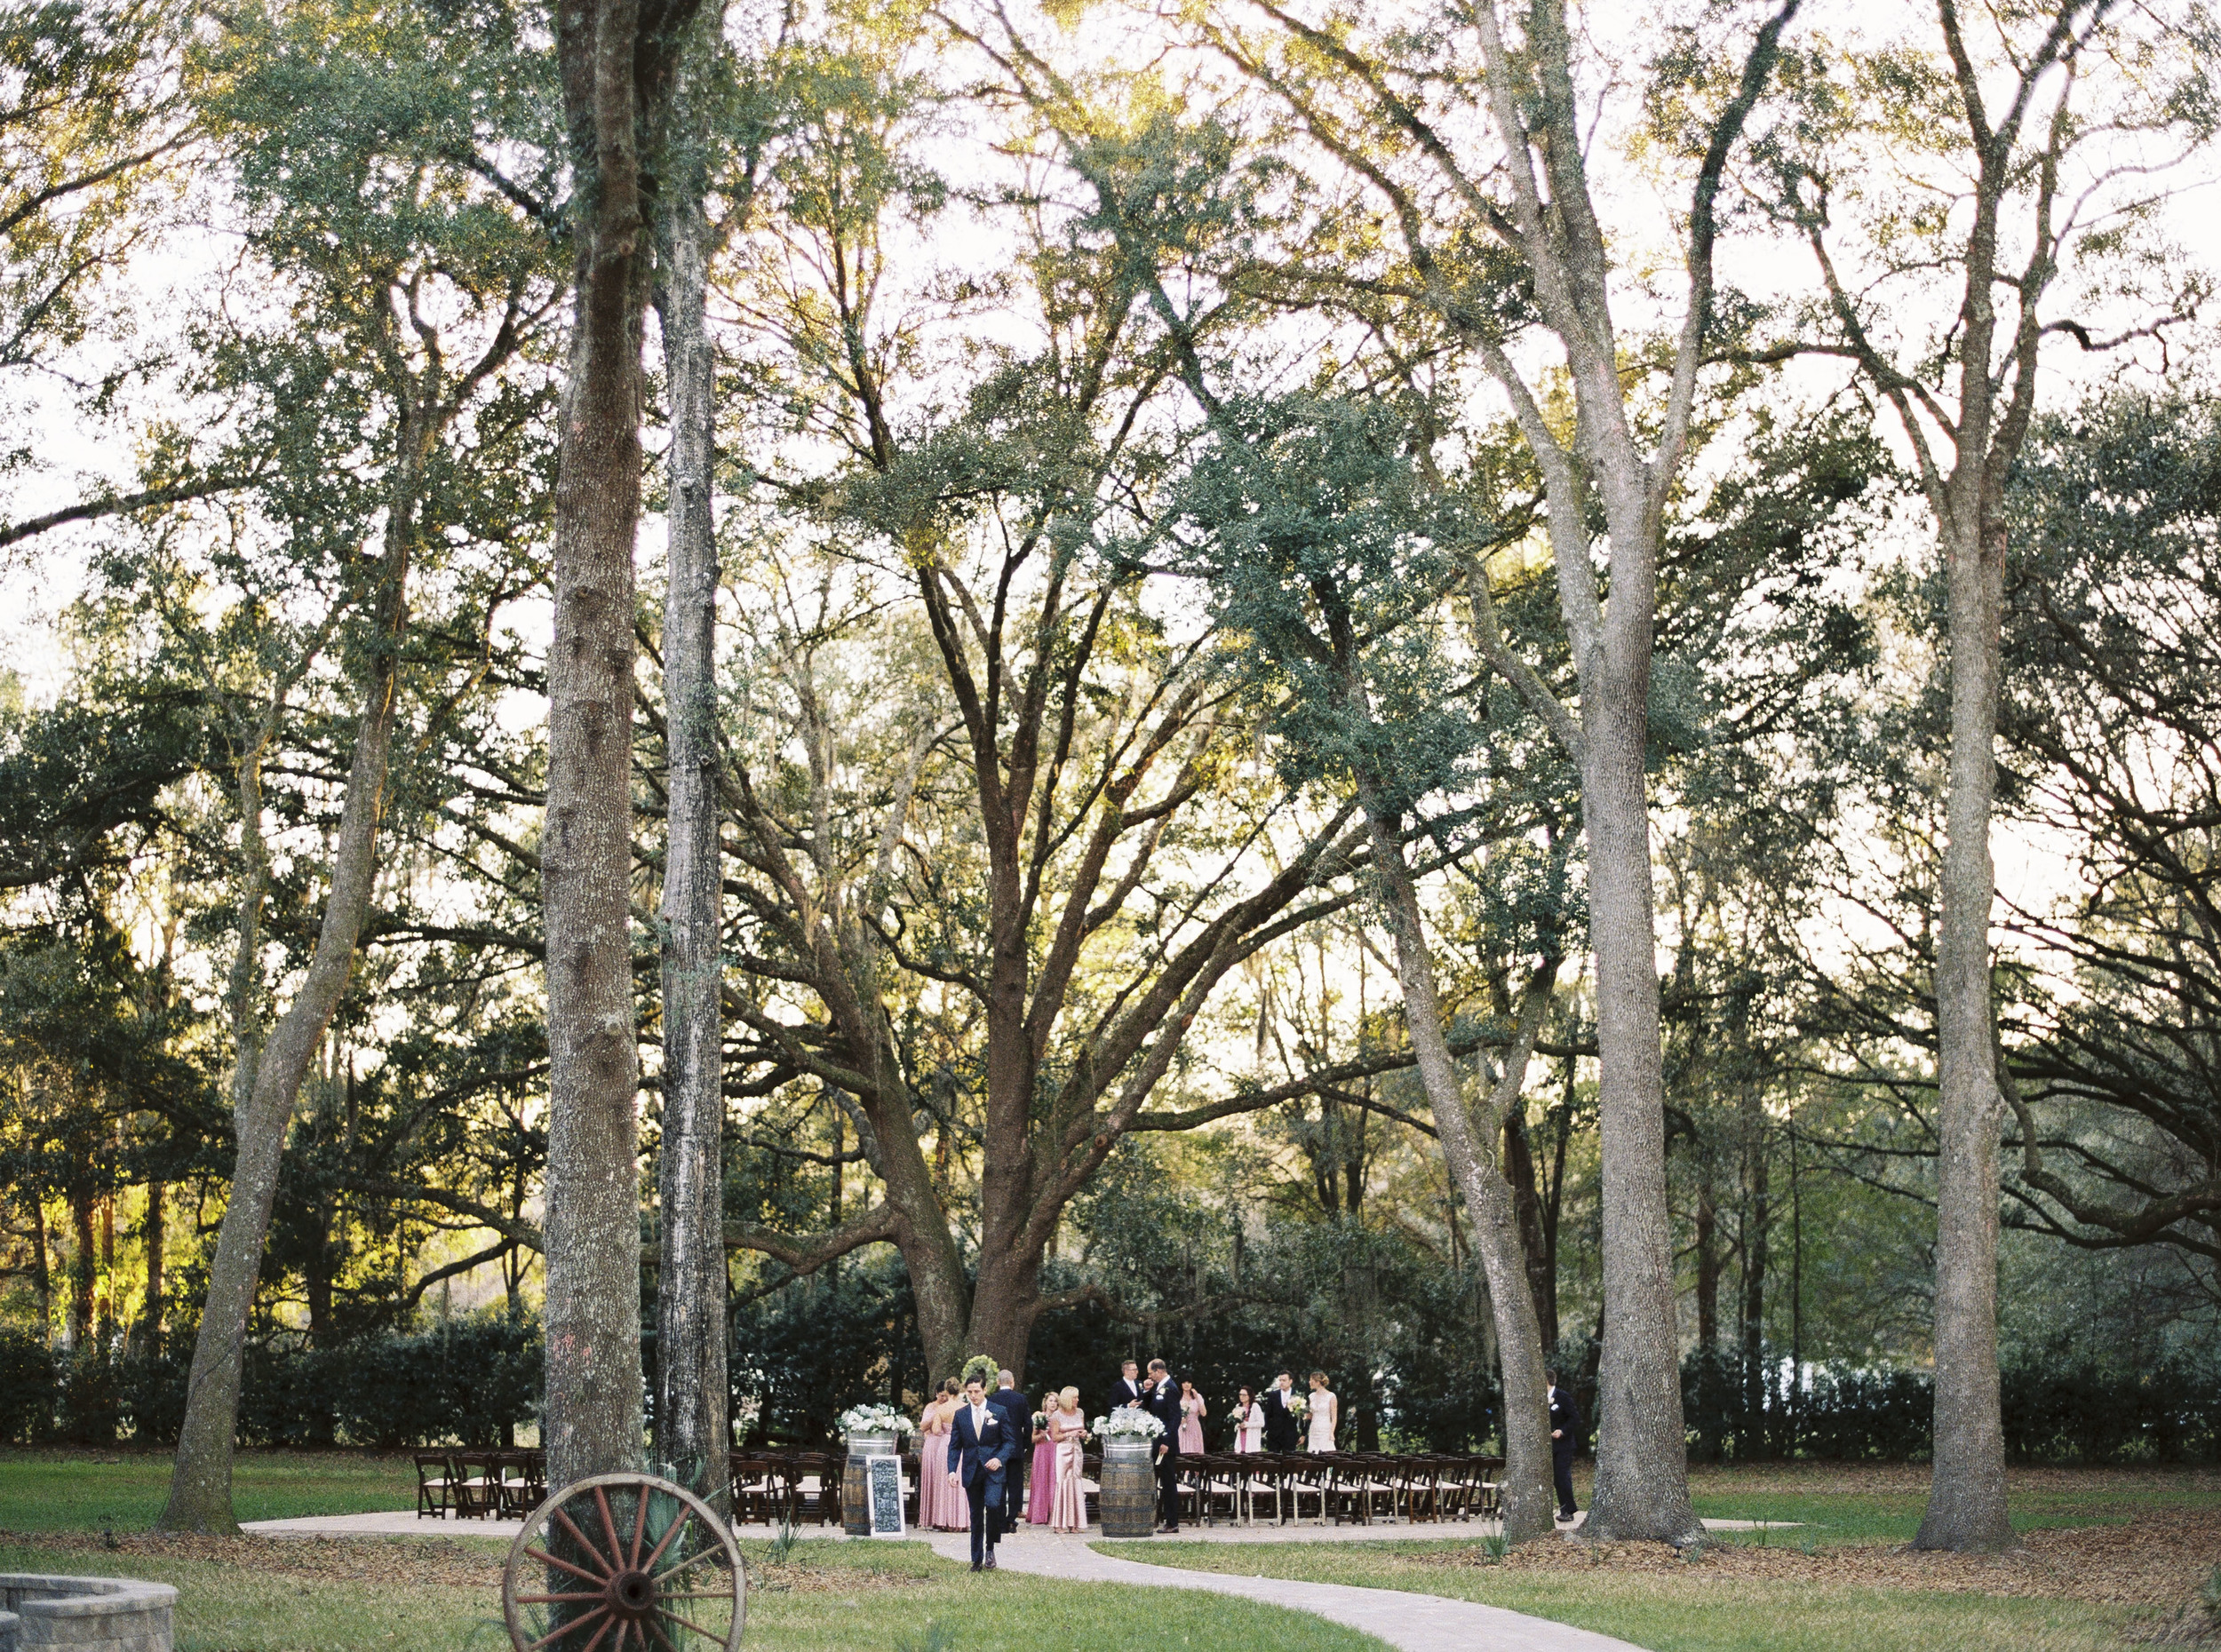 Bowing Oaks Plantation Wedding, Amanda Lenhardt Photography Dallas, Austin, and Destination